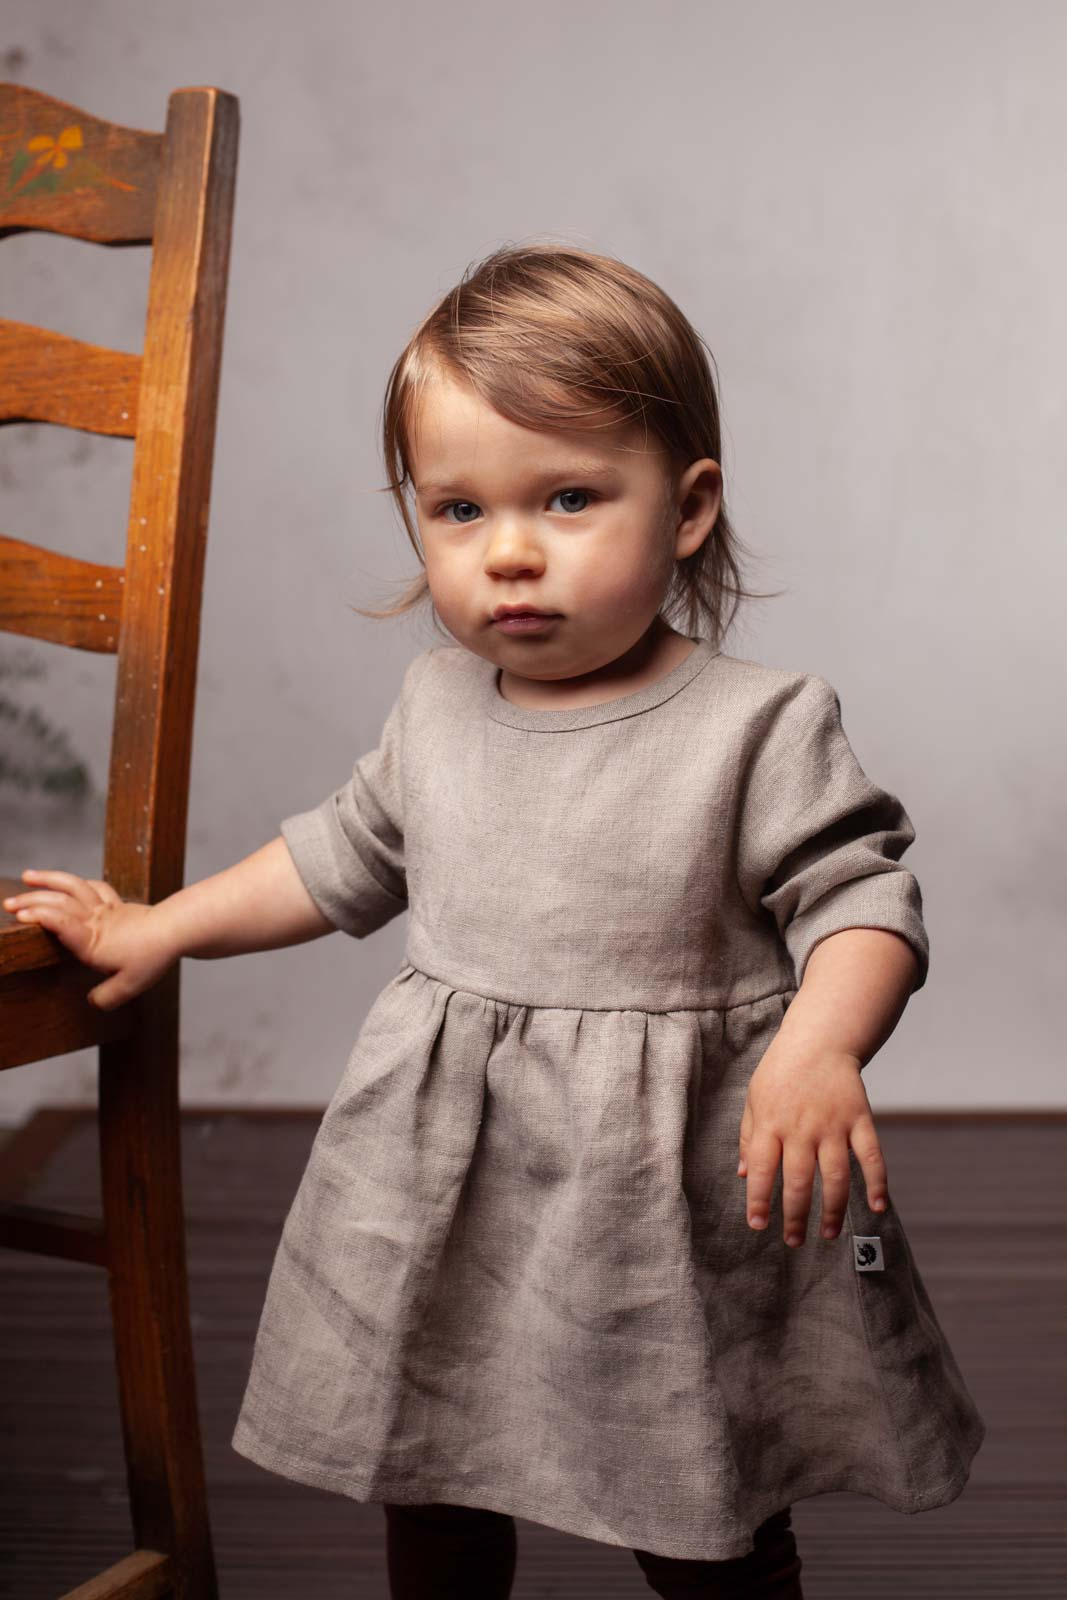 toddler in dress by chair by leah mcclean the-salted-image-noisy-forest-dress-portrait